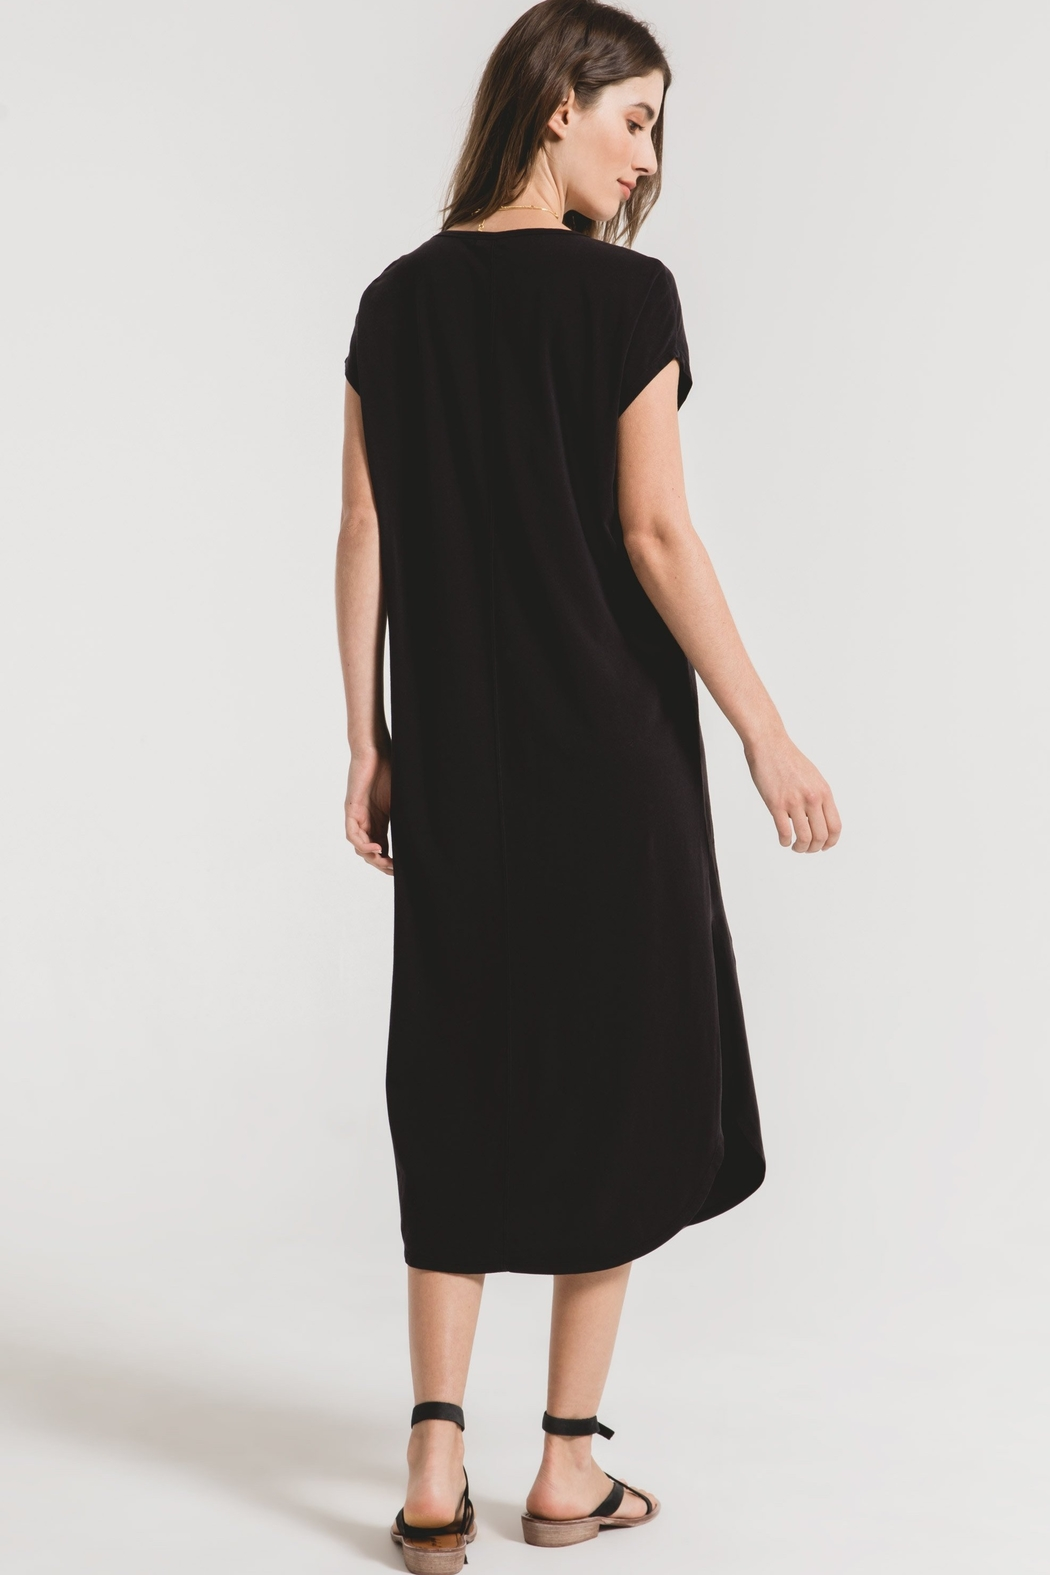 z supply The Leira Midi Dress - Side Cropped Image